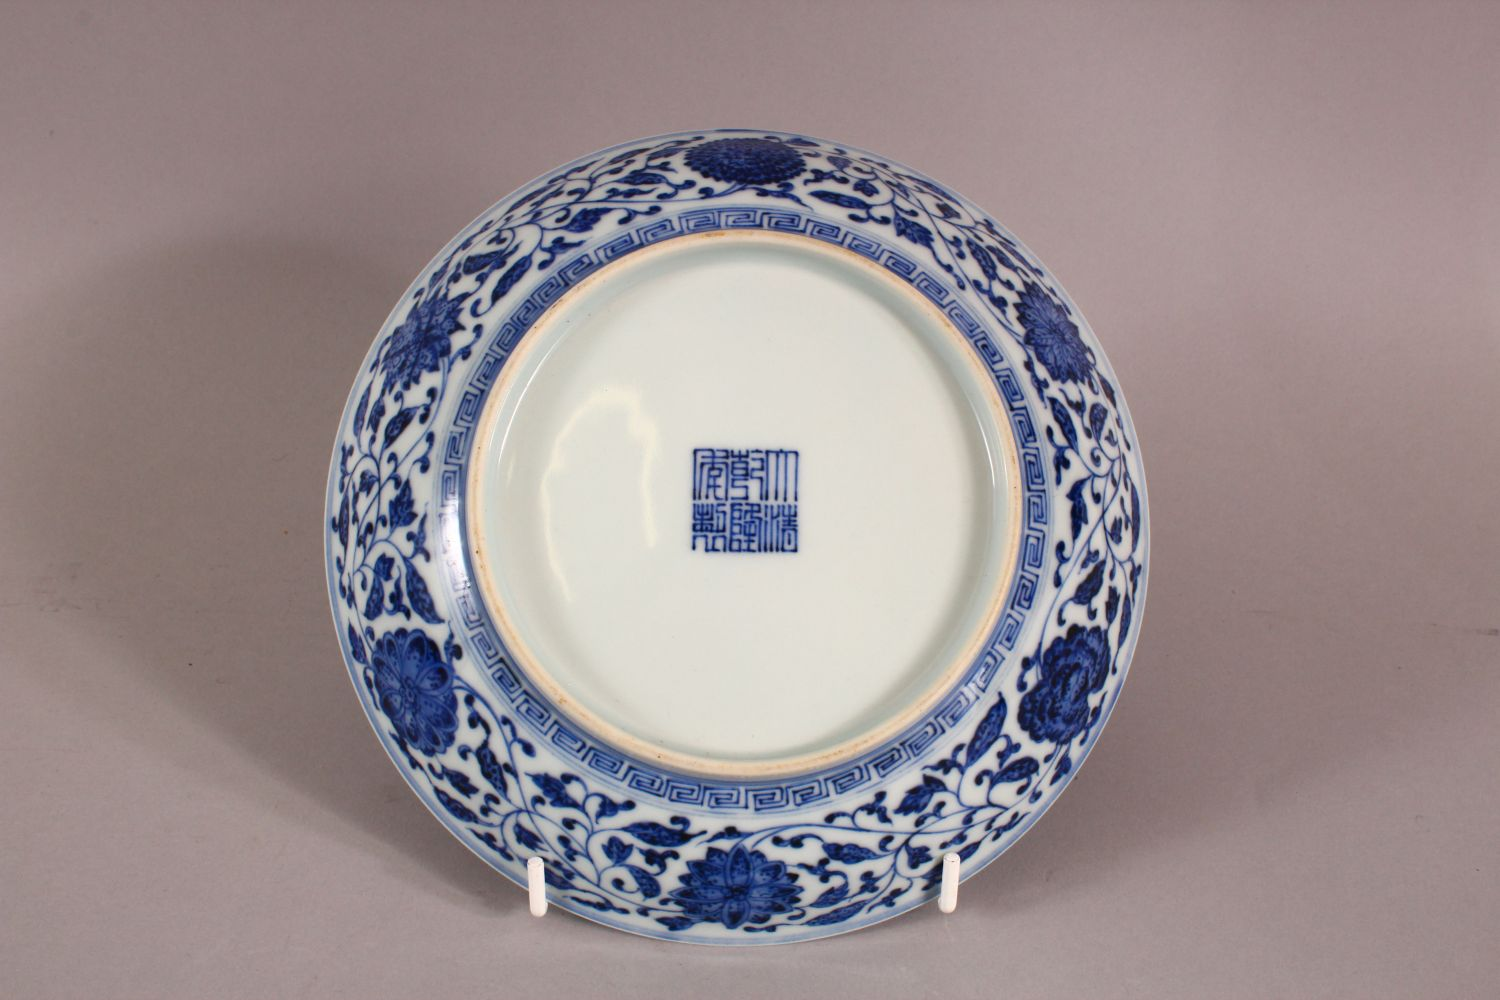 A CHINESE BLUE & WHITE PORCELAIN LOTUS DISH, decorated with sprays of lotus, the underside with a - Image 4 of 5